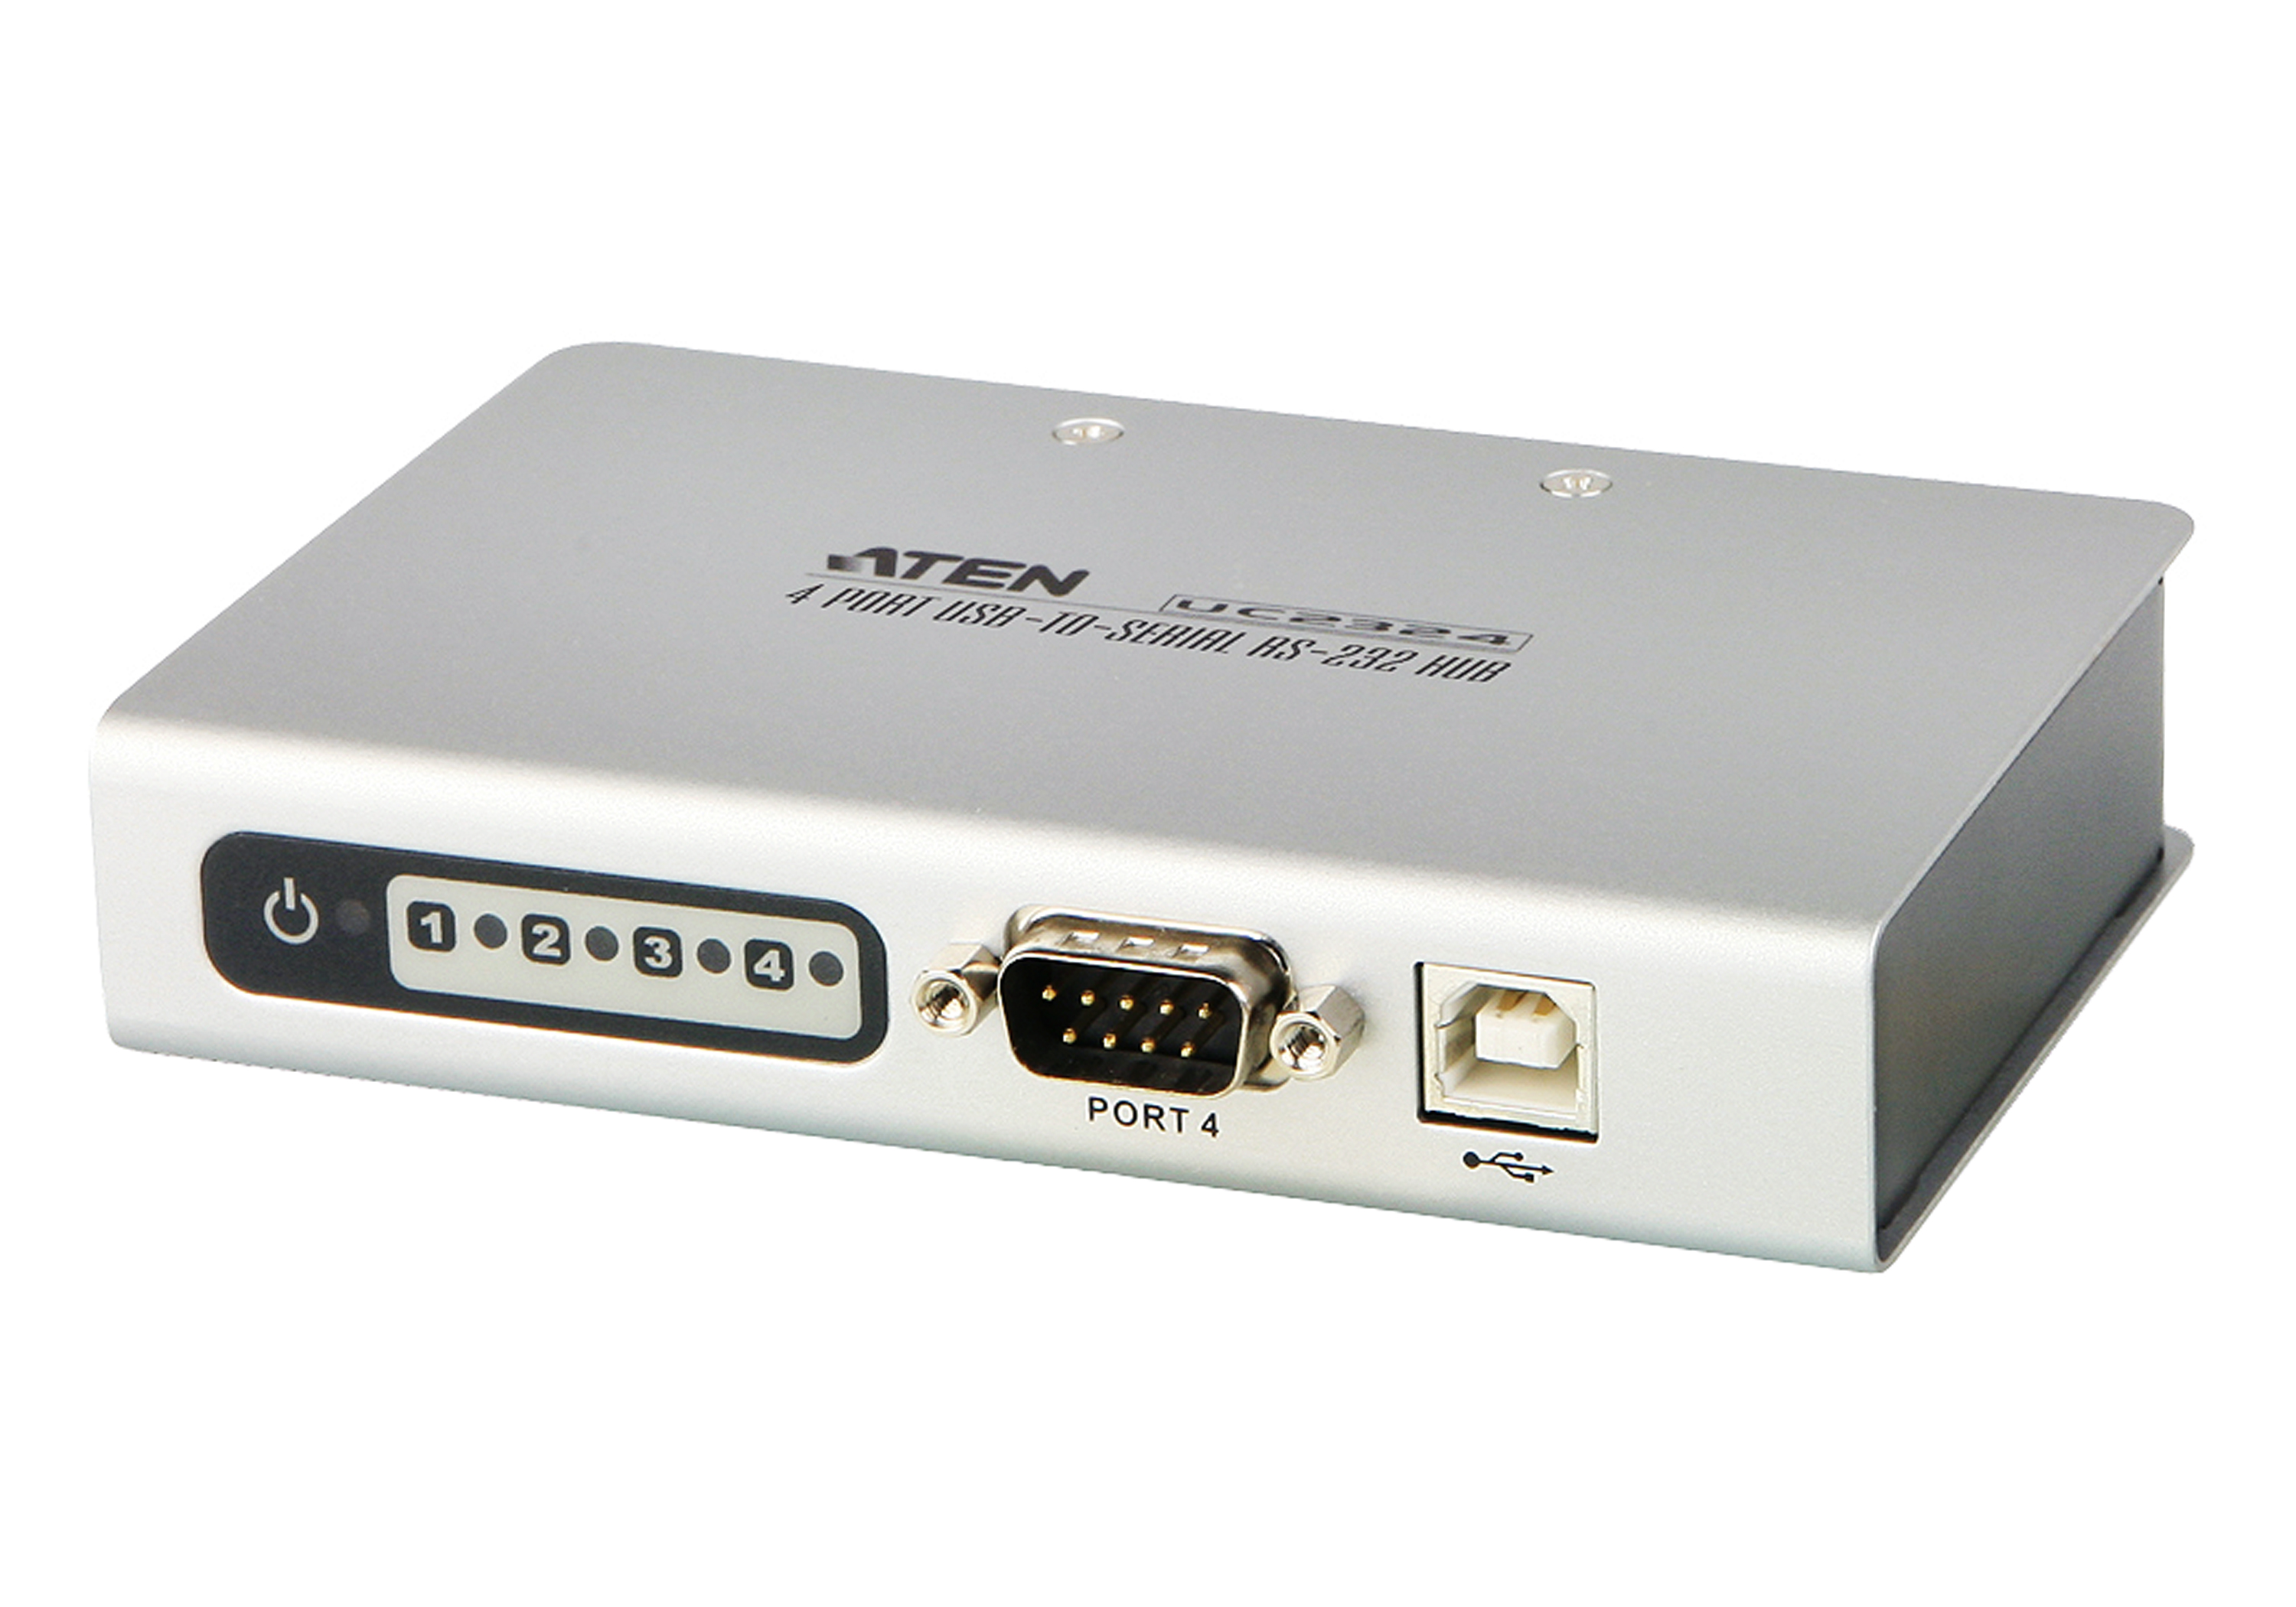 ATEN USB 2.0 TO DB9 SERIAL CONVERTER DRIVER PC